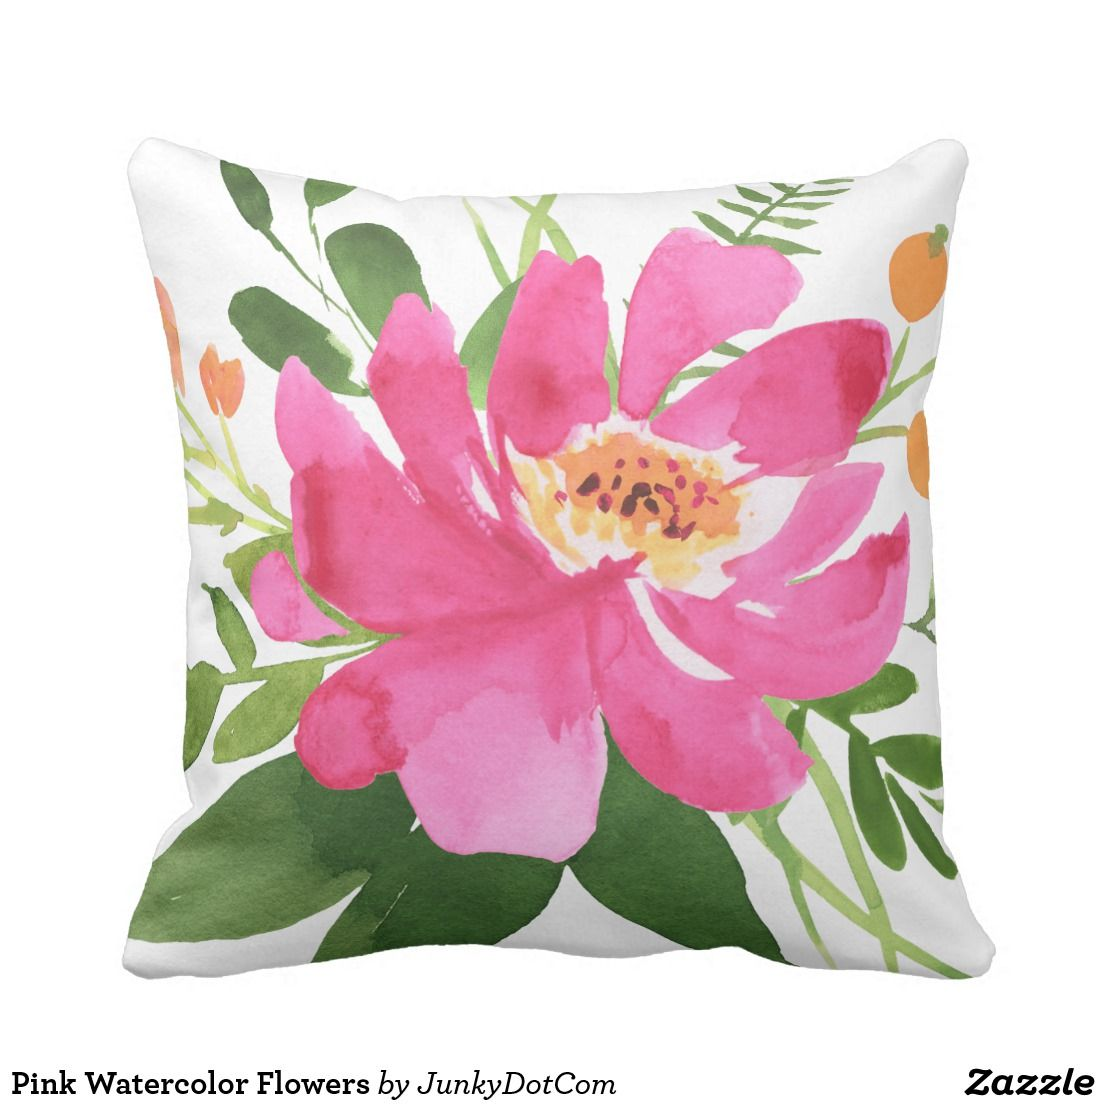 Pink Watercolor Flowers Throw Pillow Flower Throw Pillows Flower Throw Pillows Diy Pillows Floral